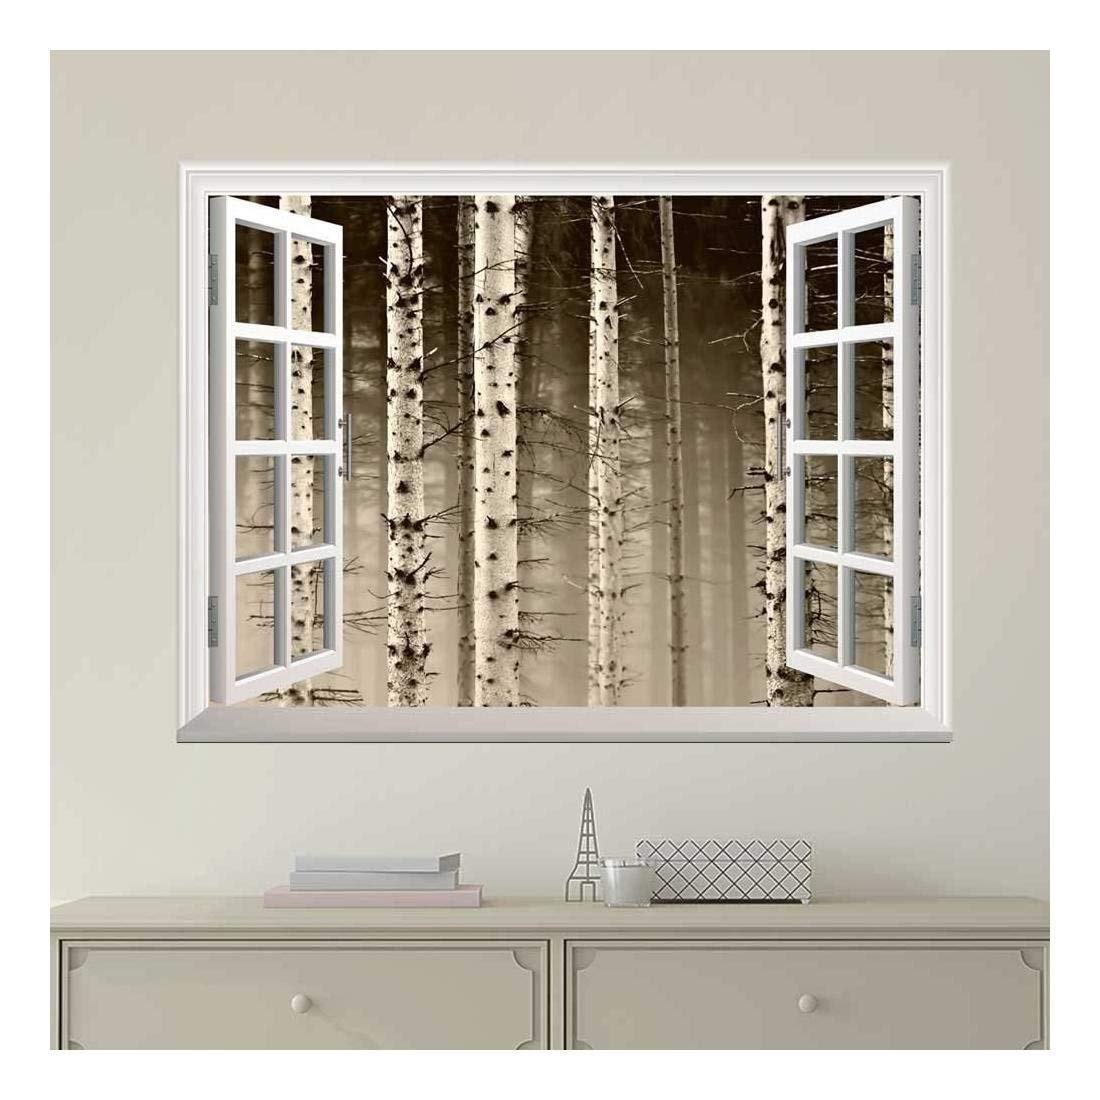 wall26 - Modern White Window Looking Out Into a Foggy Sepia Forest - Wall Mural, Removable Sticker, Home Decor - 36x48 inches